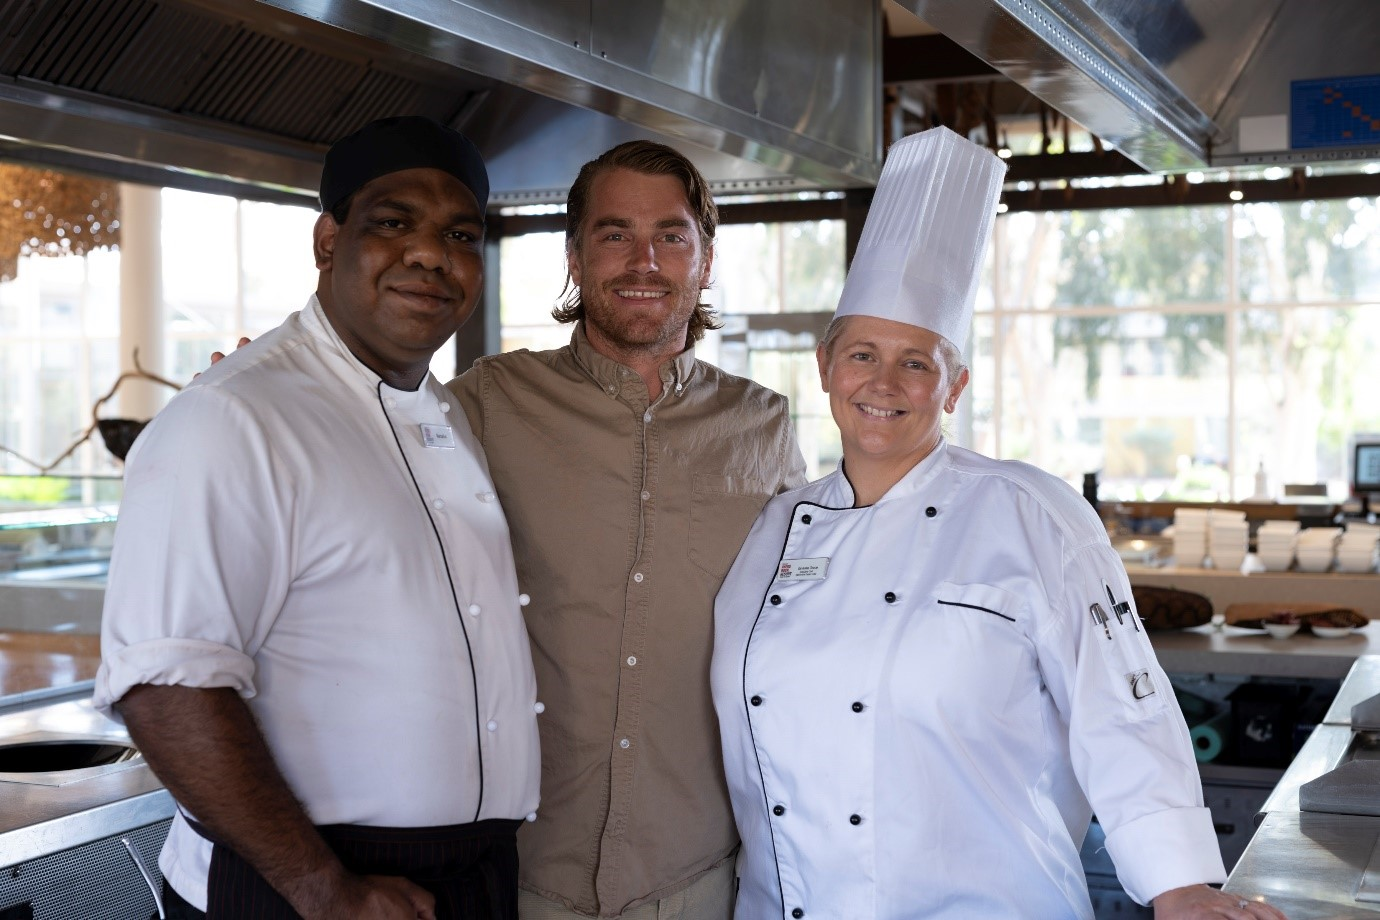 Three chefs (two male and one female) pose and smile in an industrial kitchen.